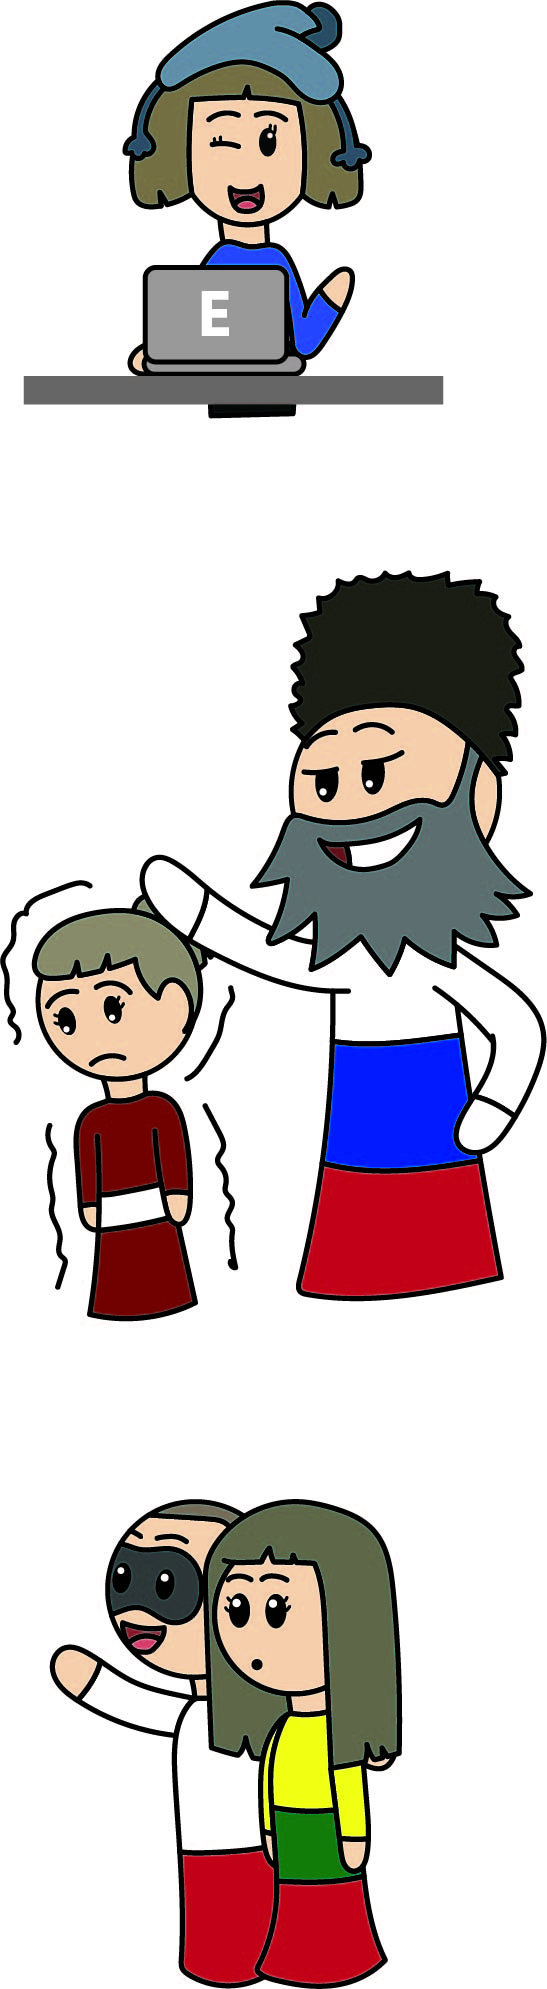 The Baltic States of Scandinavia and the World: Hetalia Style